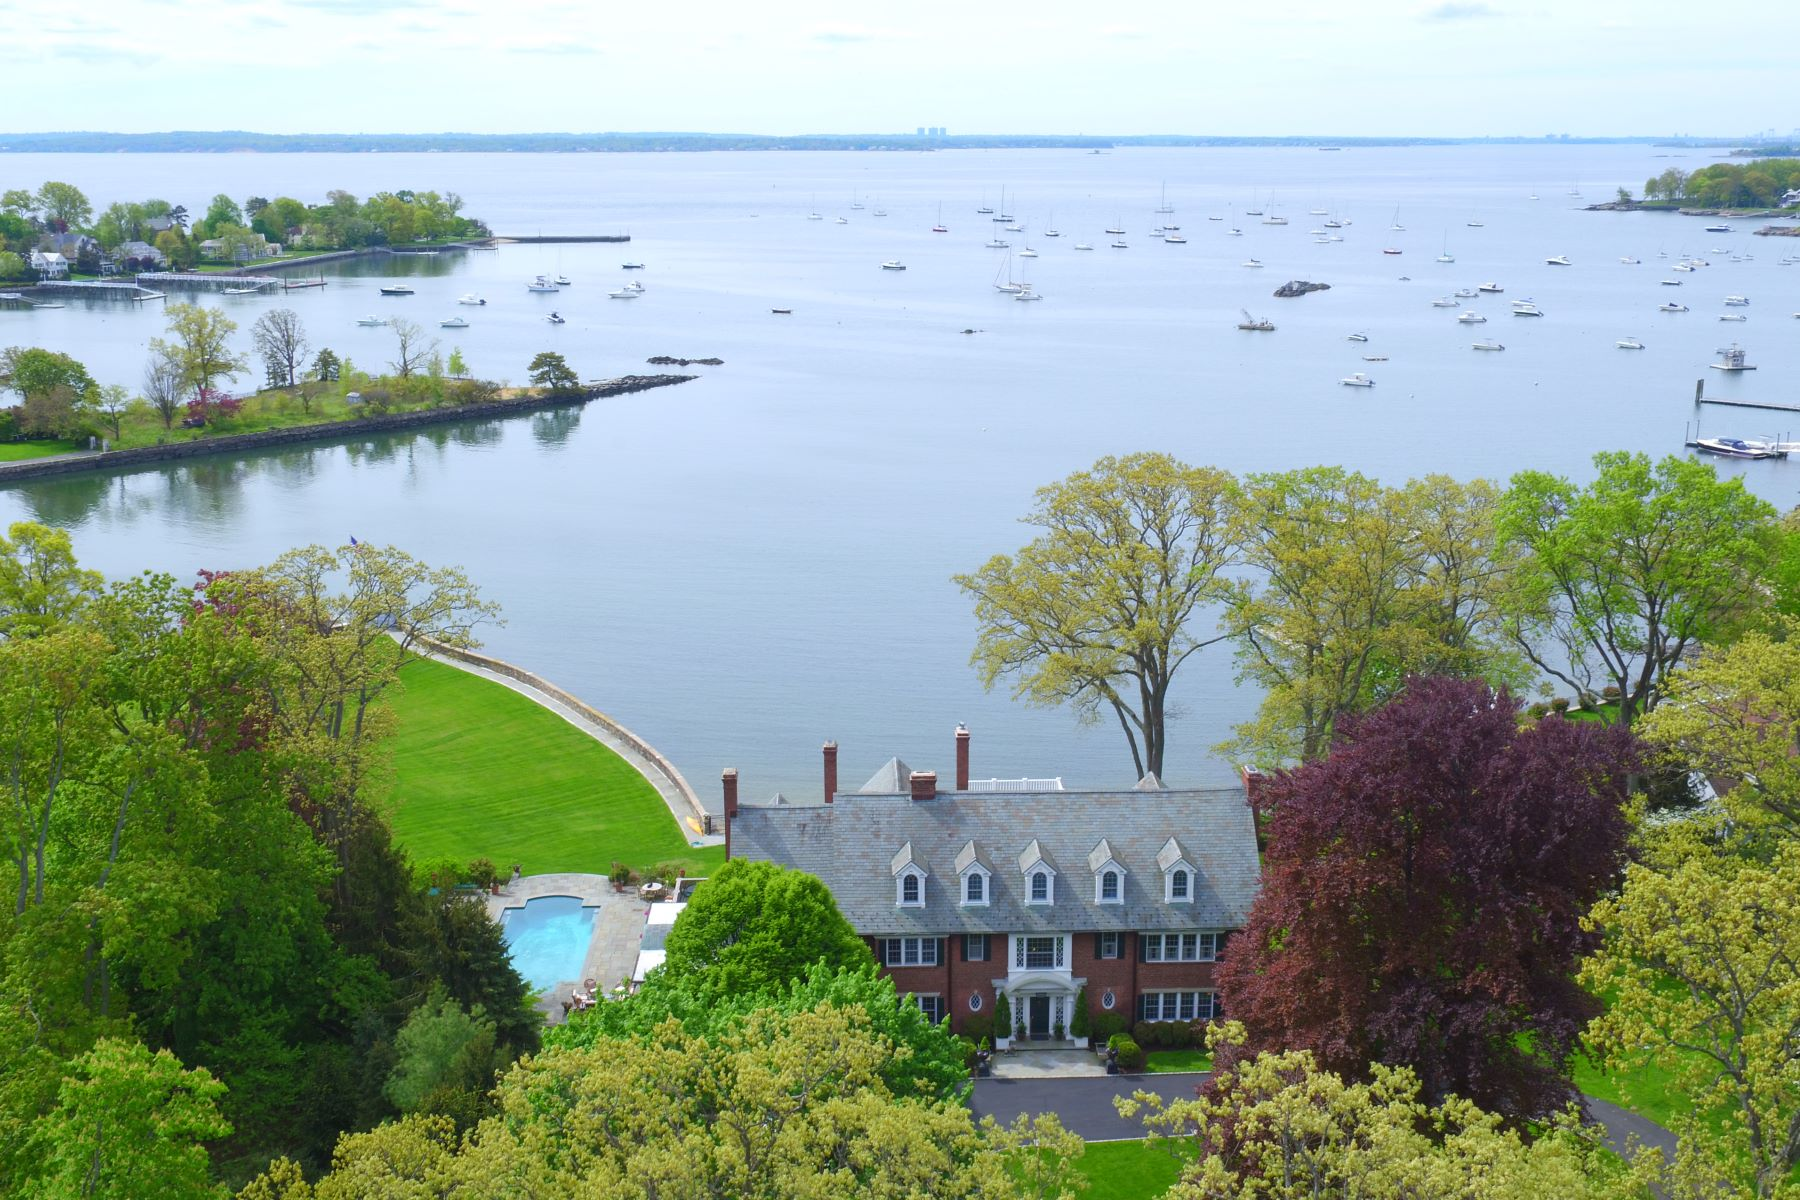 House for Sale at Bliss on the Larchmont Waterfront 203 Hommocks Road Larchmont, New York 10538 United States